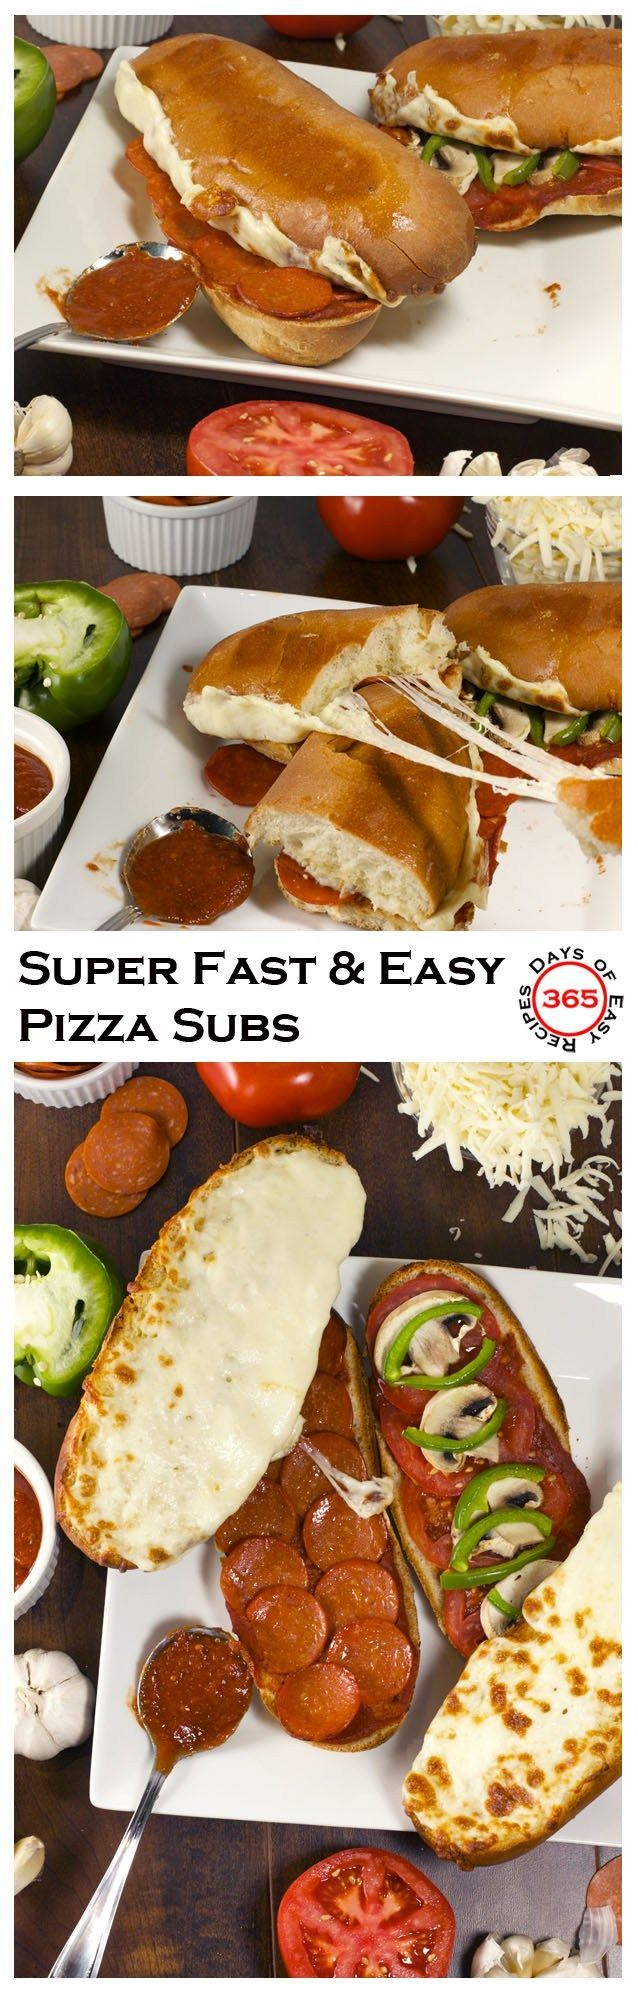 These Super Fast Pizza Subs are perfect for dinner on those busy nights